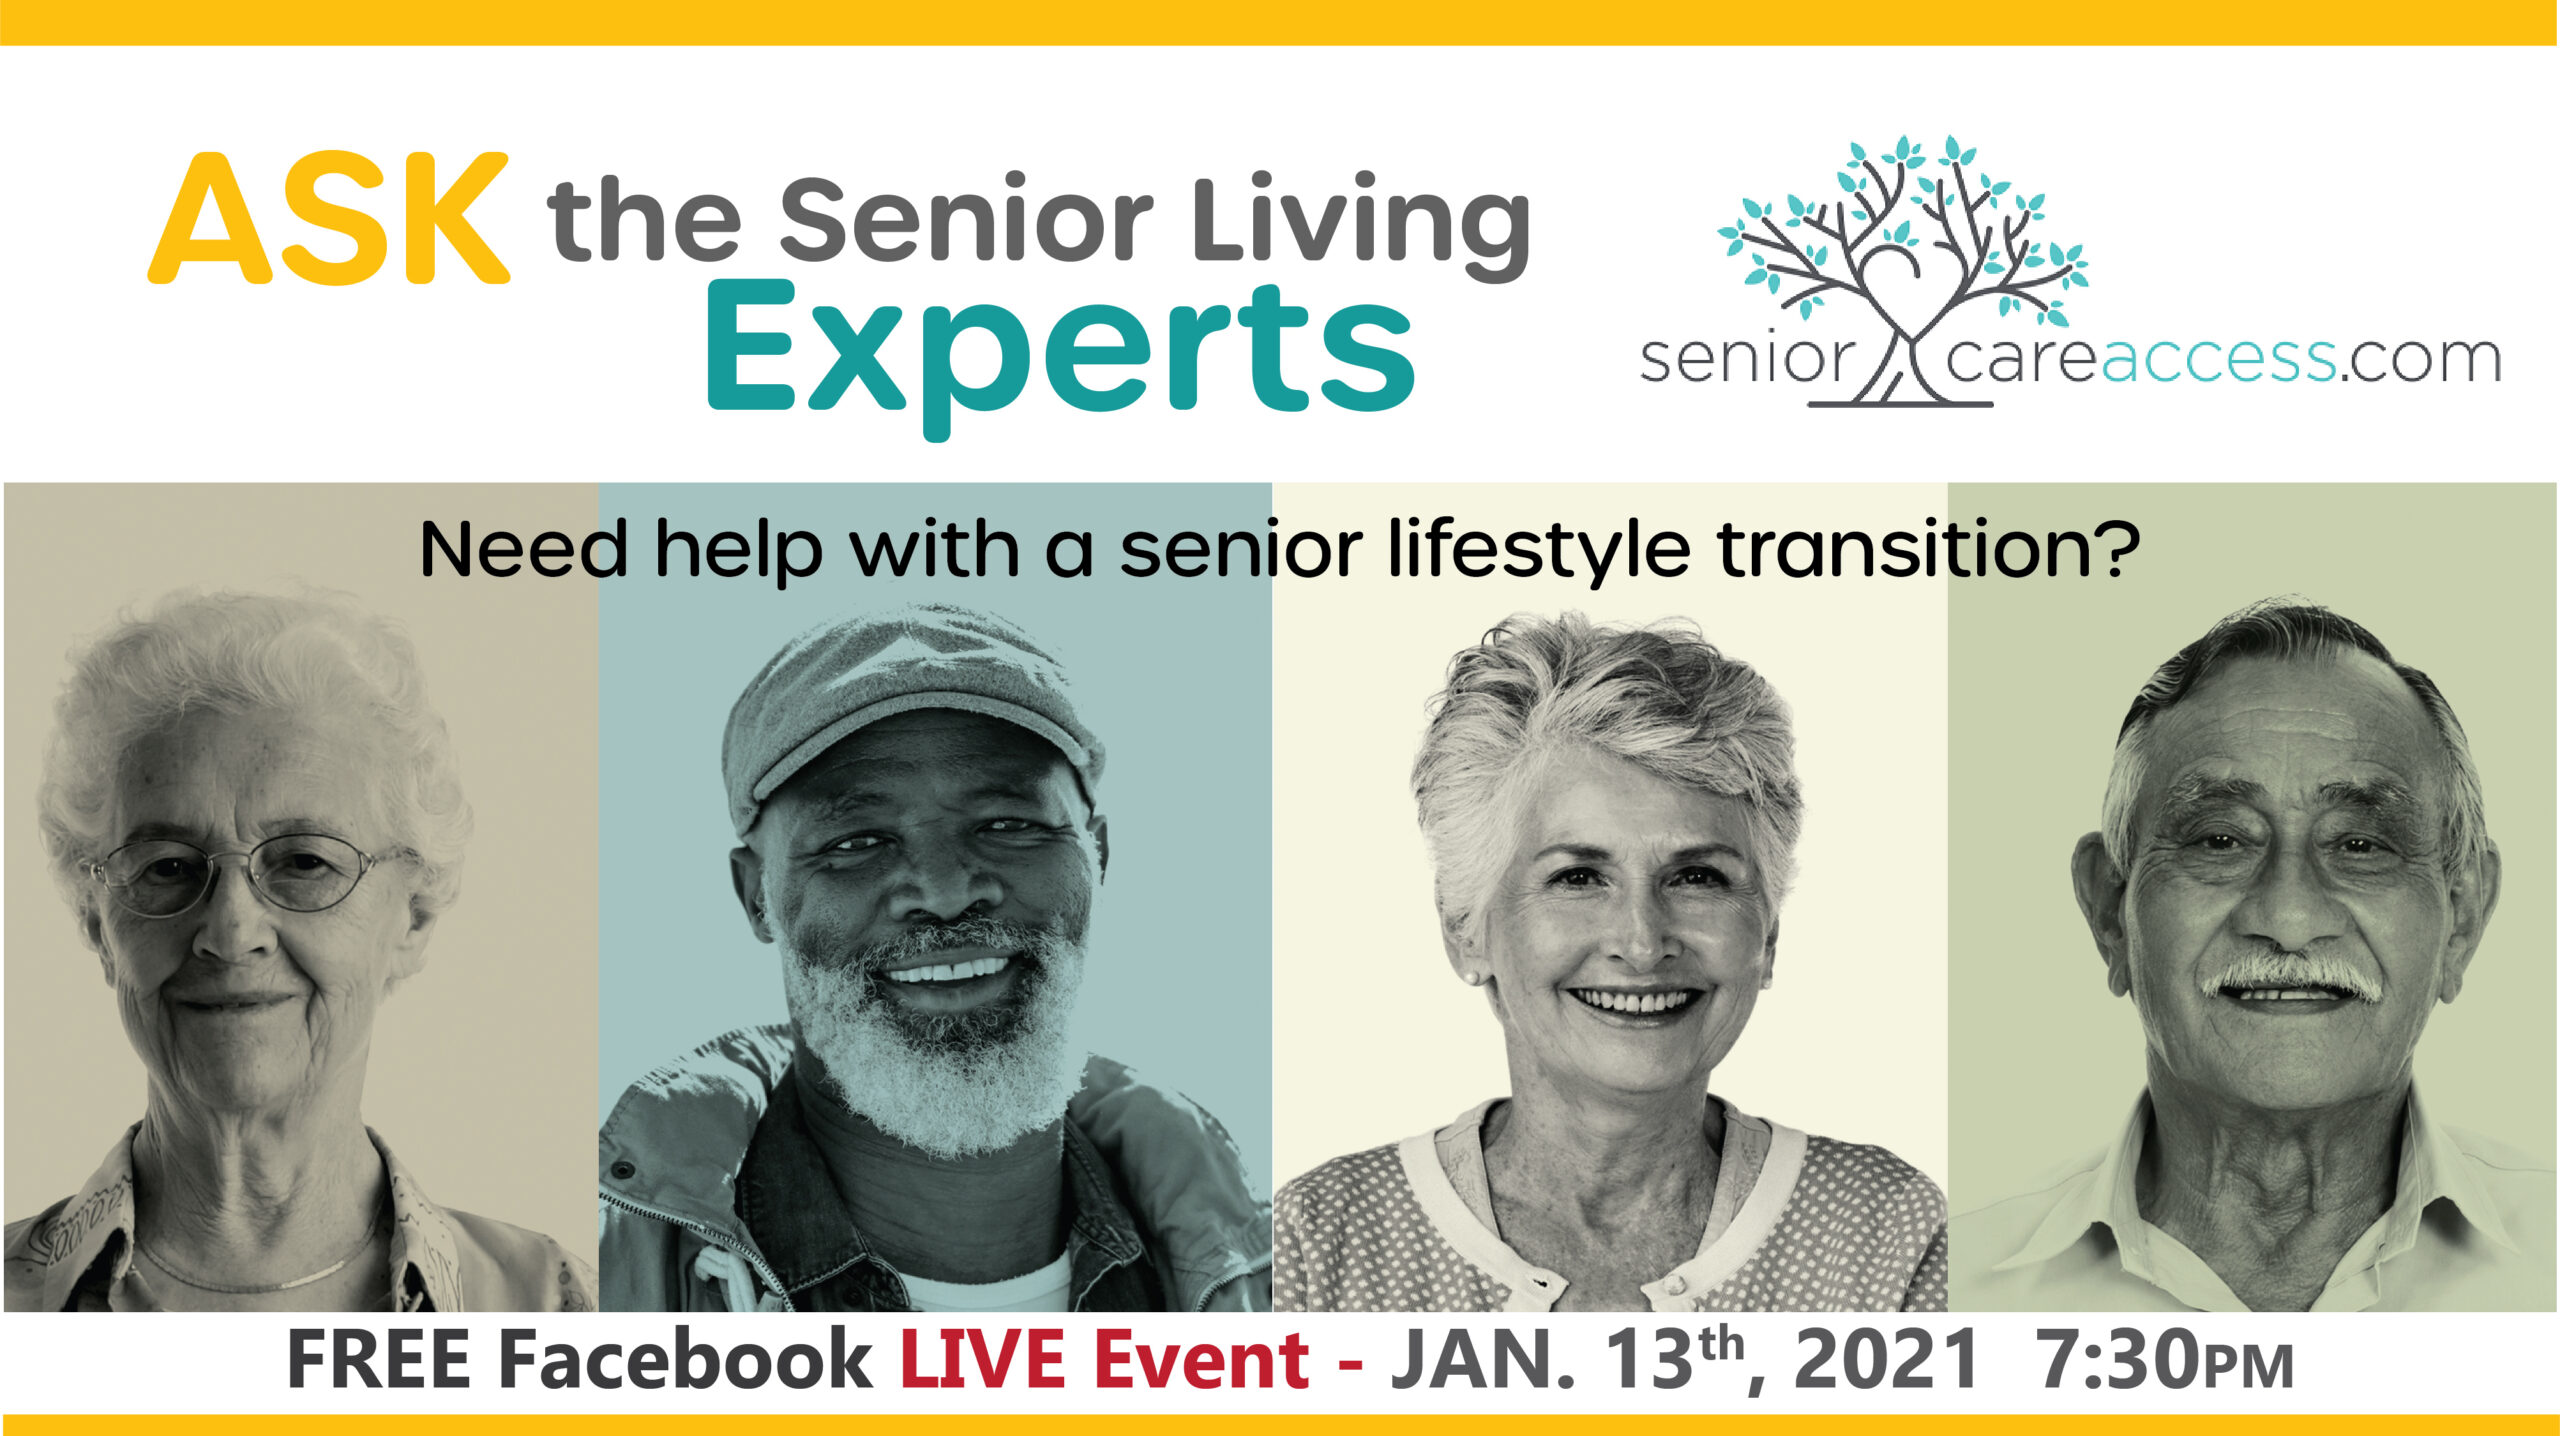 Senior Care Access ask the experts